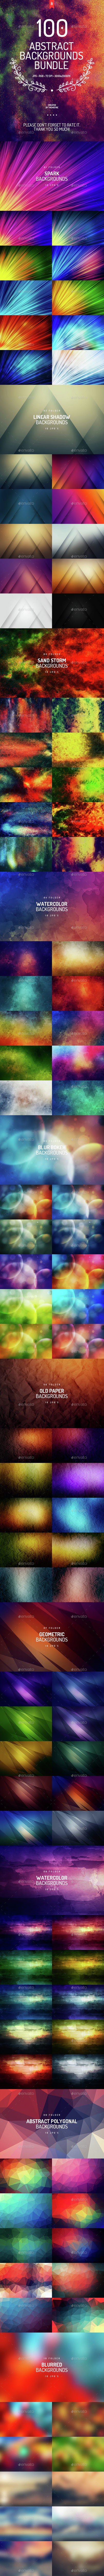 100 Abstract Backgrounds Bundle - Abstract Backgrounds